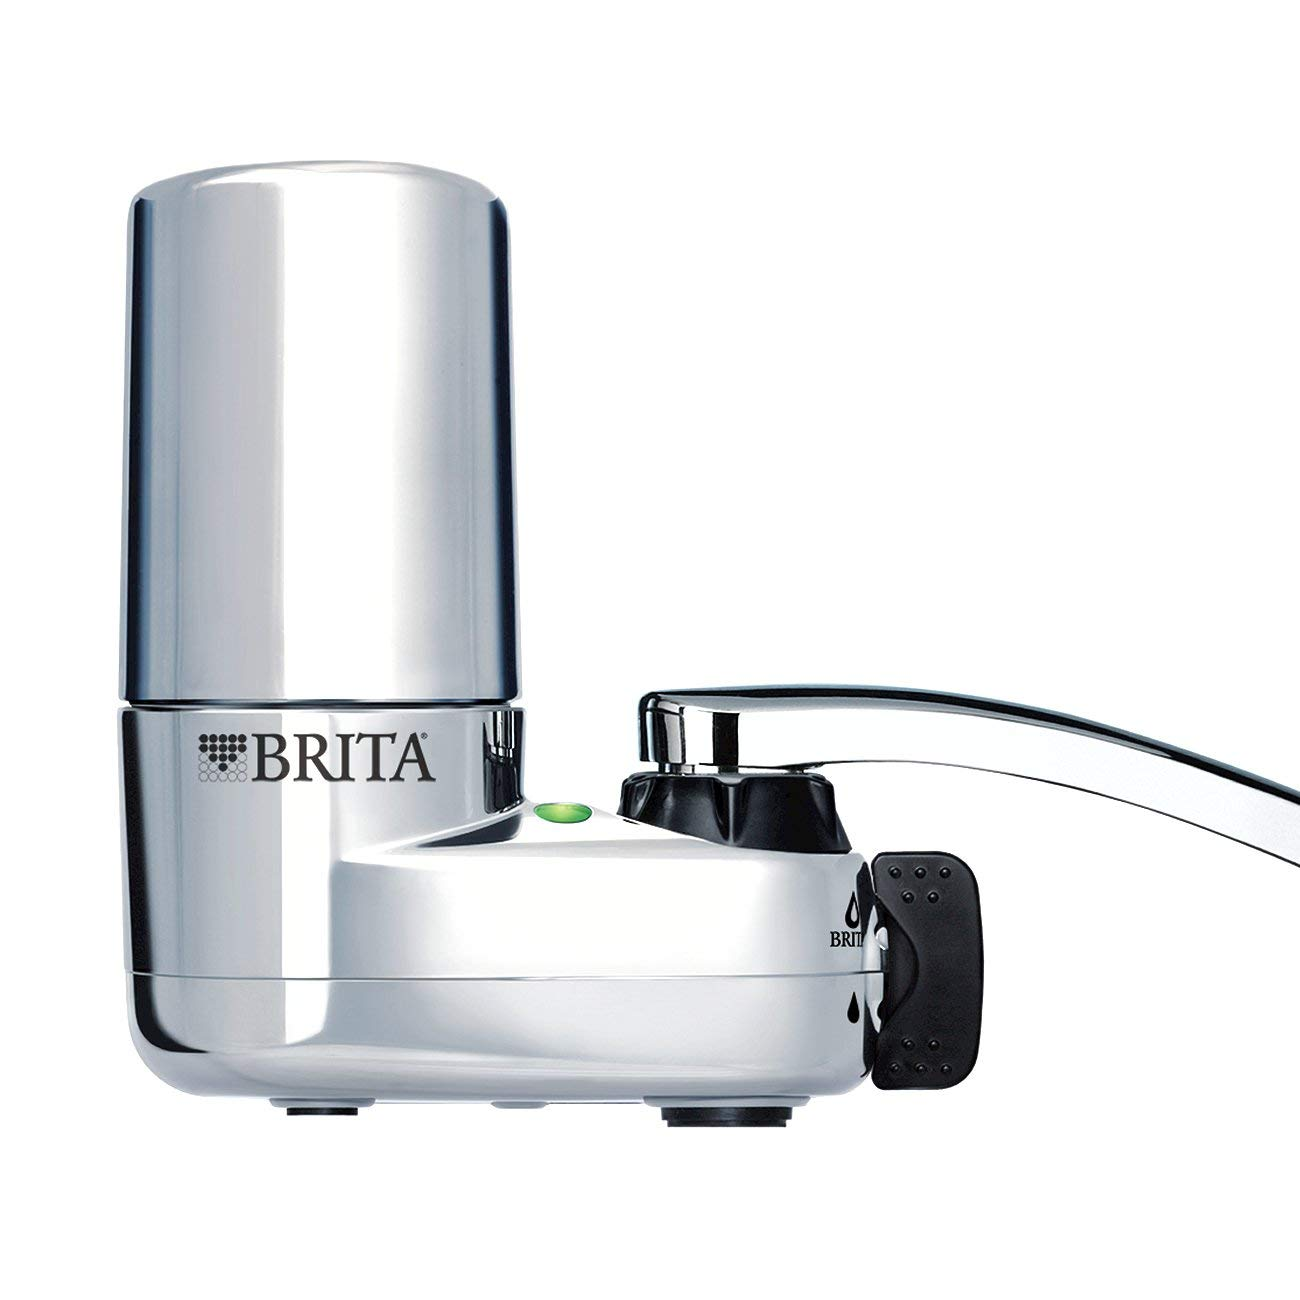 Brita Tap Water Filter System, Water Faucet Filtration System with Filter Change Reminder, Reduces Lead, BPA Free, Fits Standard Faucets Only - Chrome by Brita